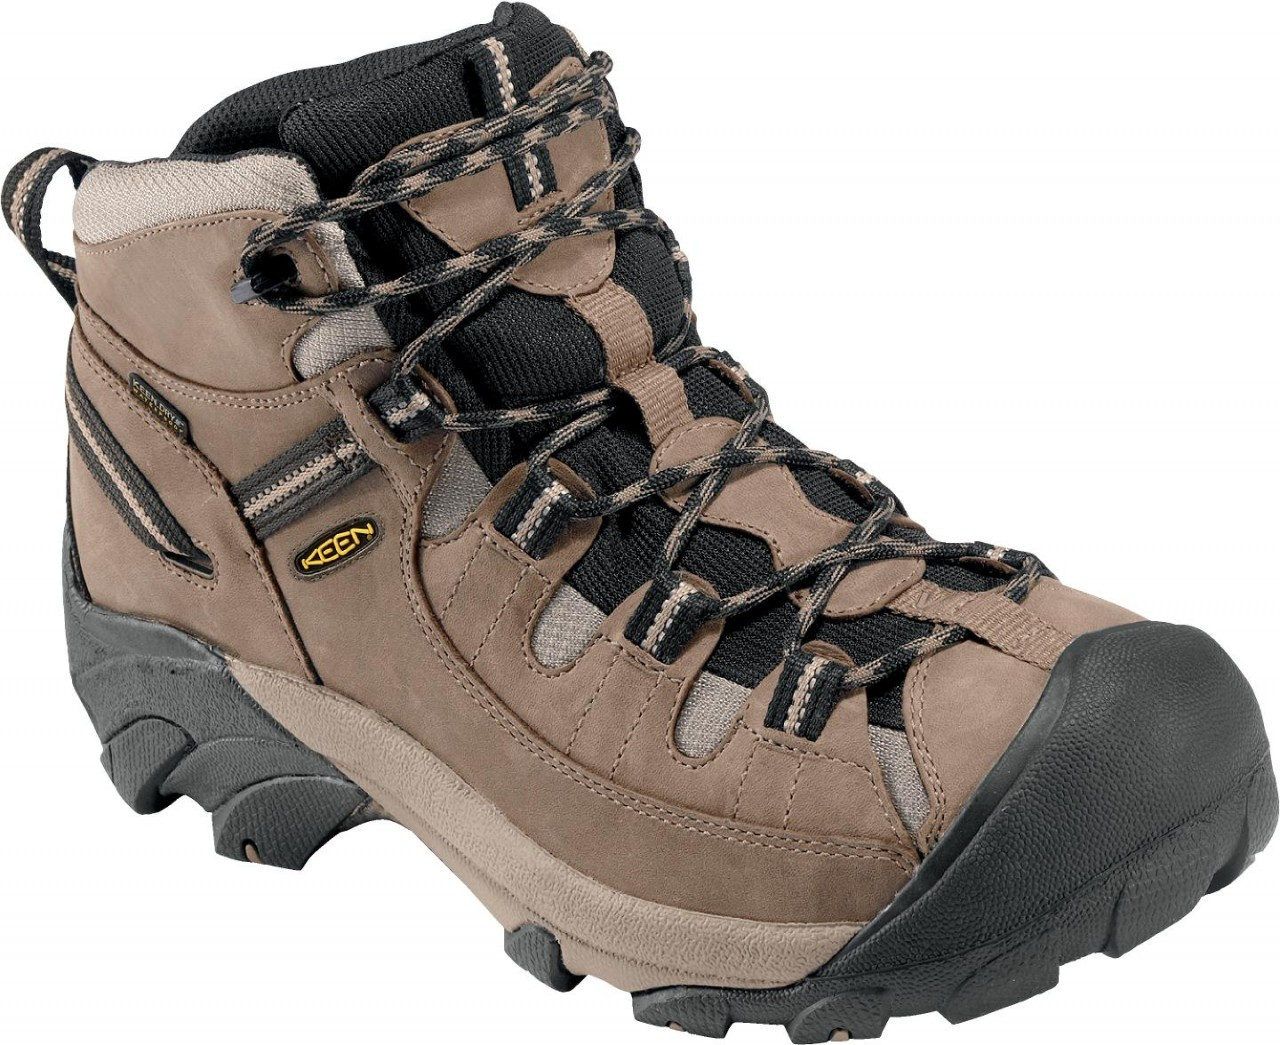 ee067a8edf5 Men's Keen Targhee II Mid WIDE Hiking Boot